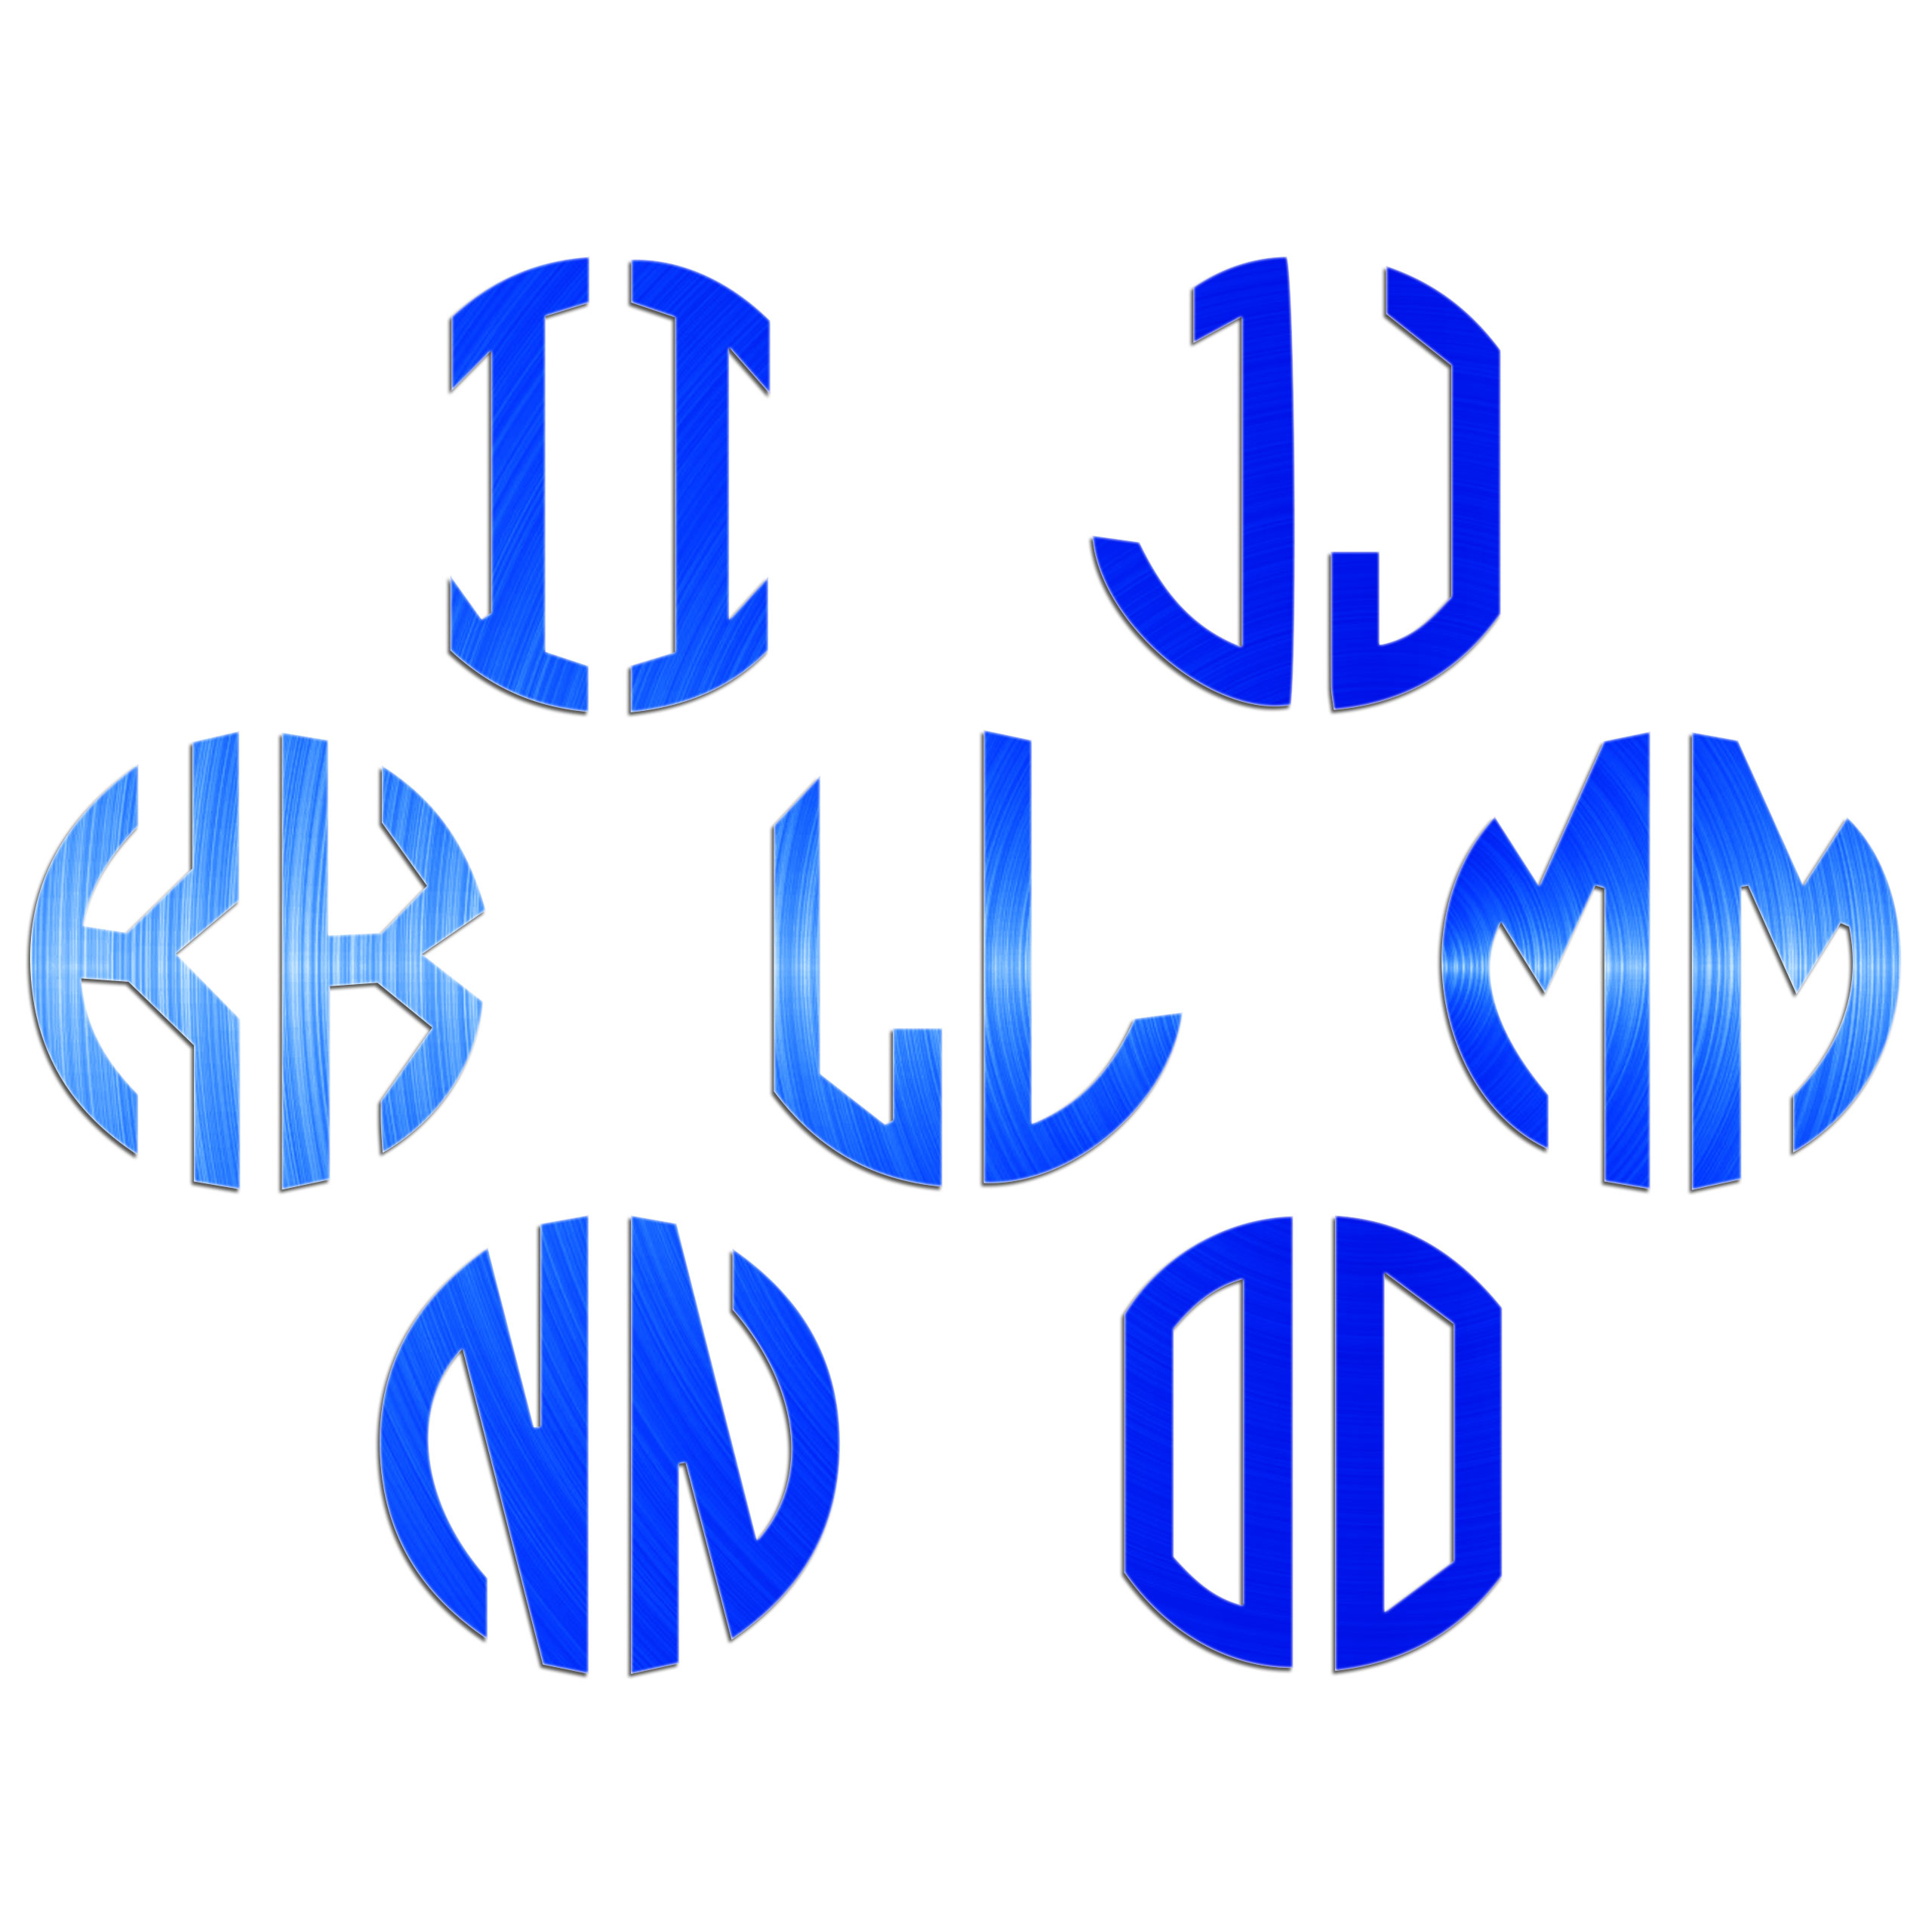 JasonCarlMorgan-JCM-Graphics-Personalised-Initials-Monogram-Sticker thumbnail 11